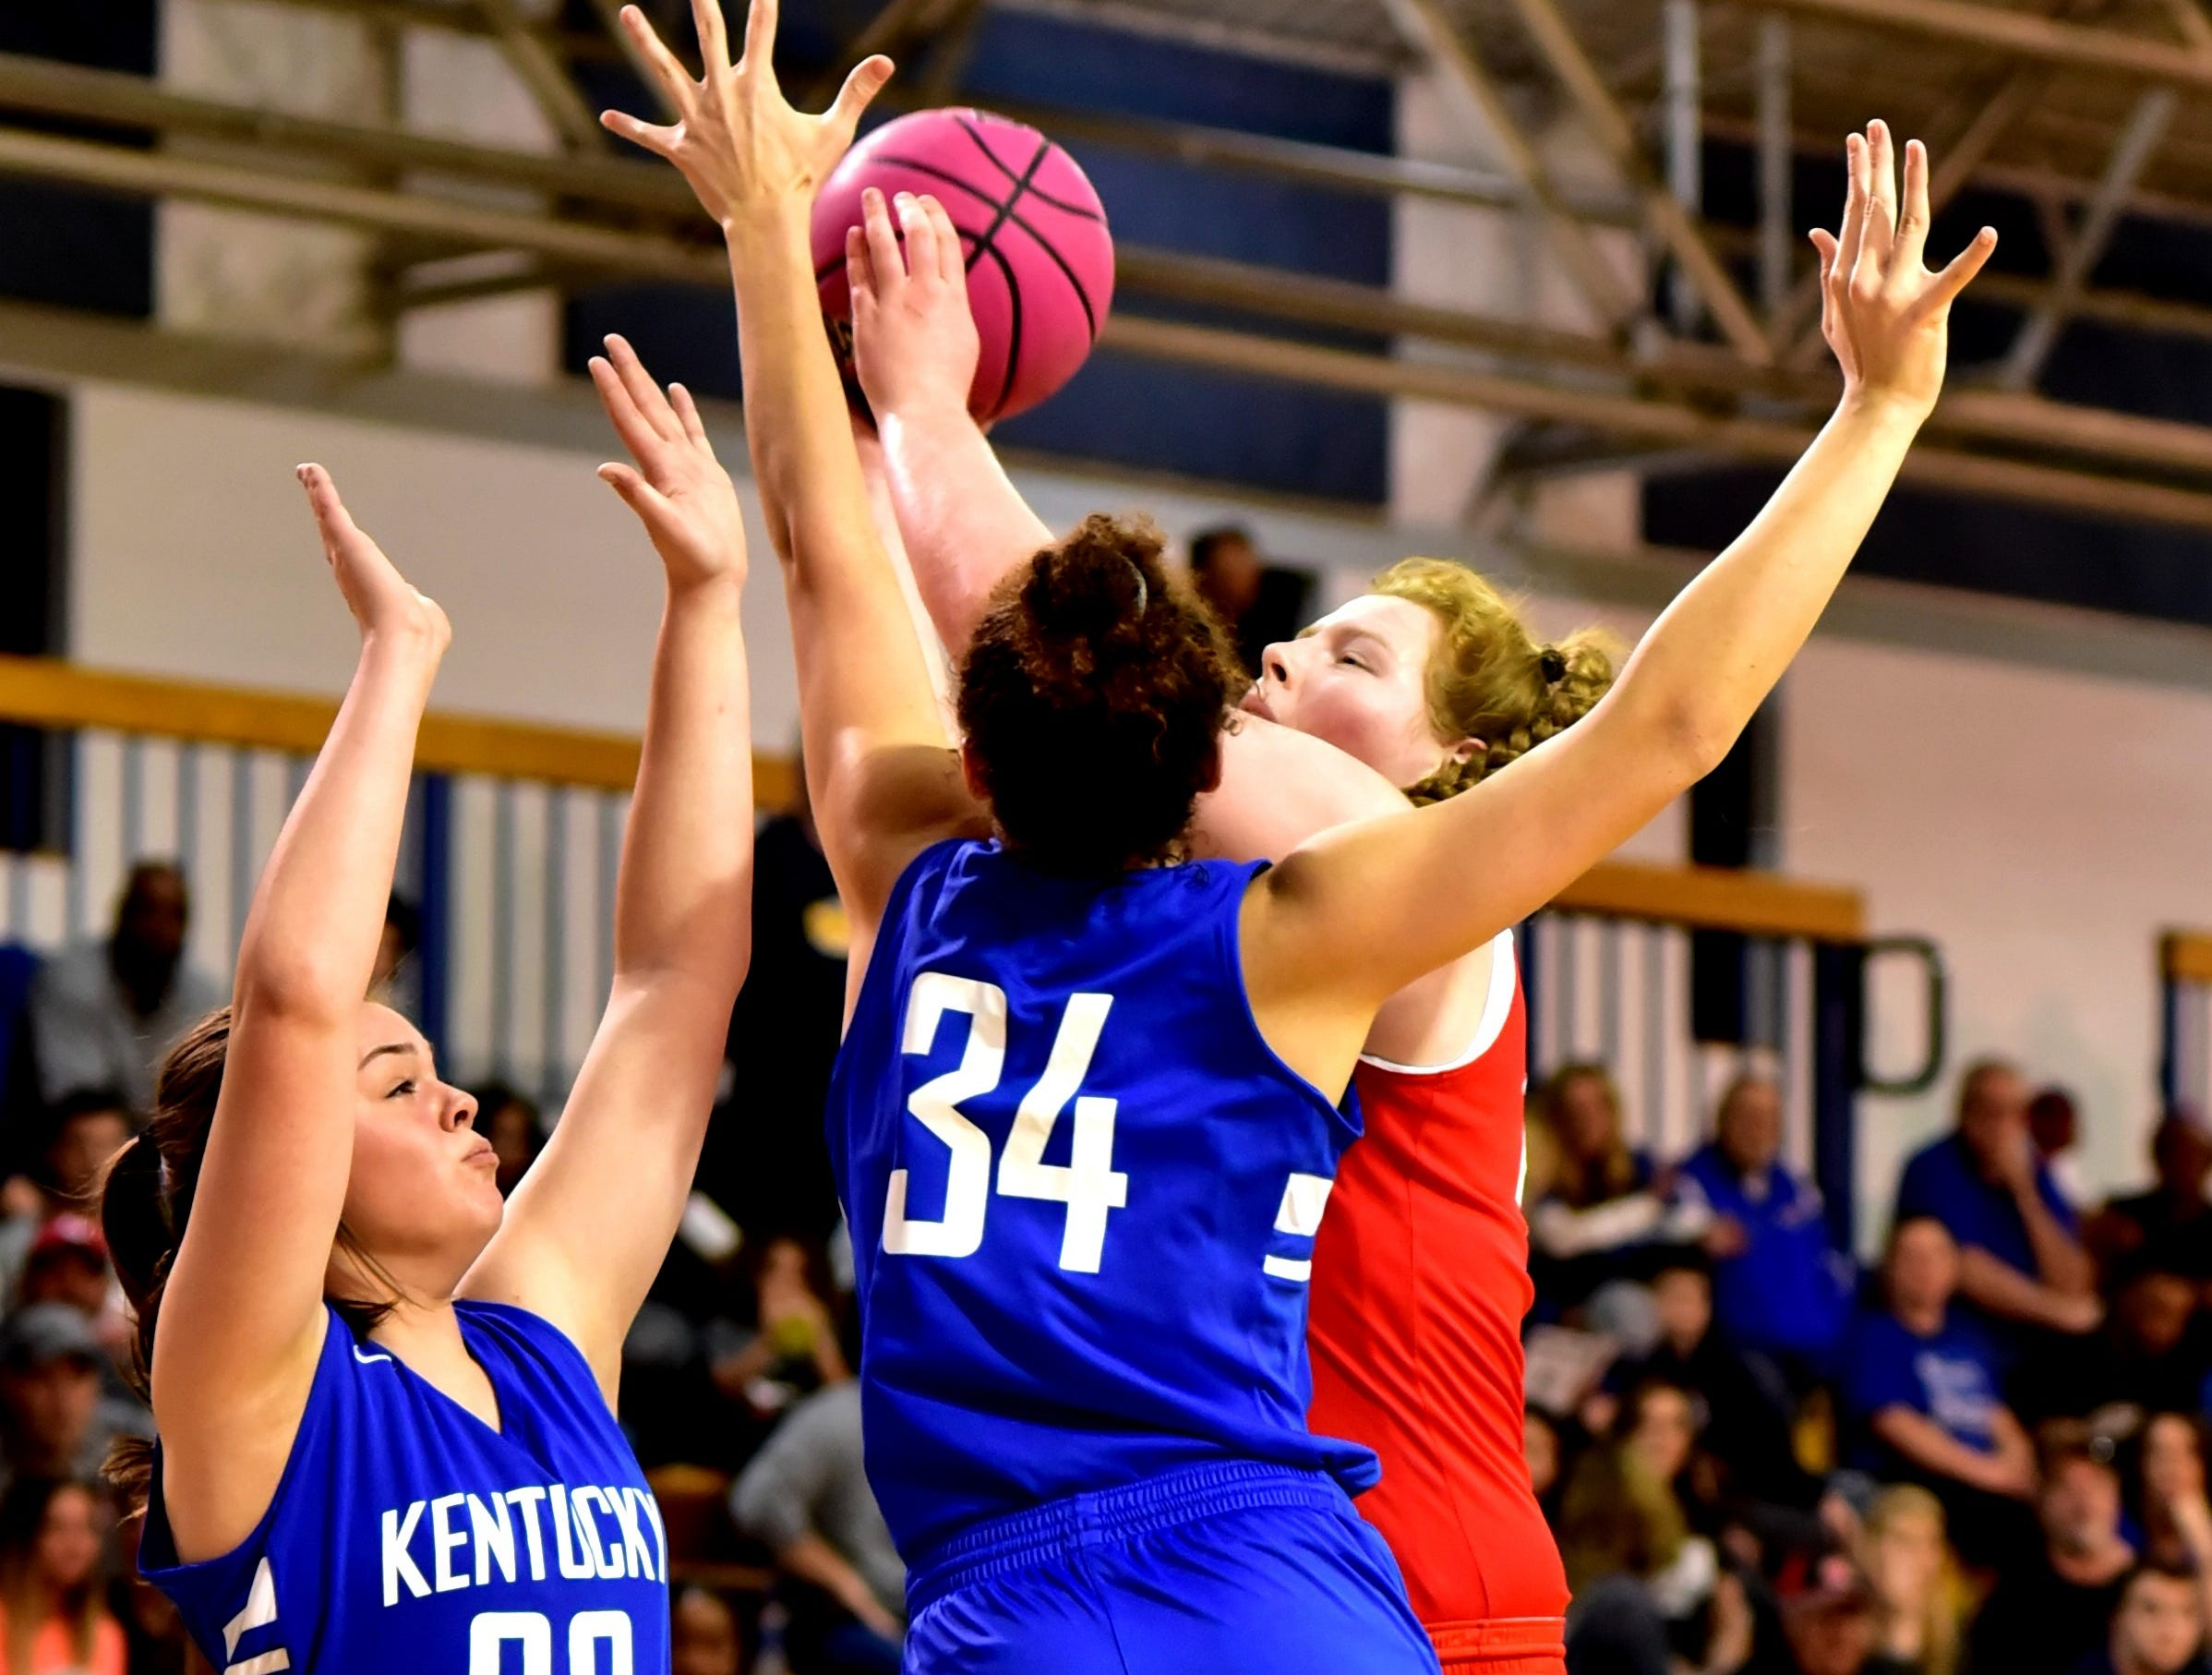 Emma Shaffer (back) of Ursuline Academy puts up a jump shot in traffic for the Ohio girls team at the 28th Annual Ohio-Kentucky All Star Games played at Thomas More University, April 13, 2019